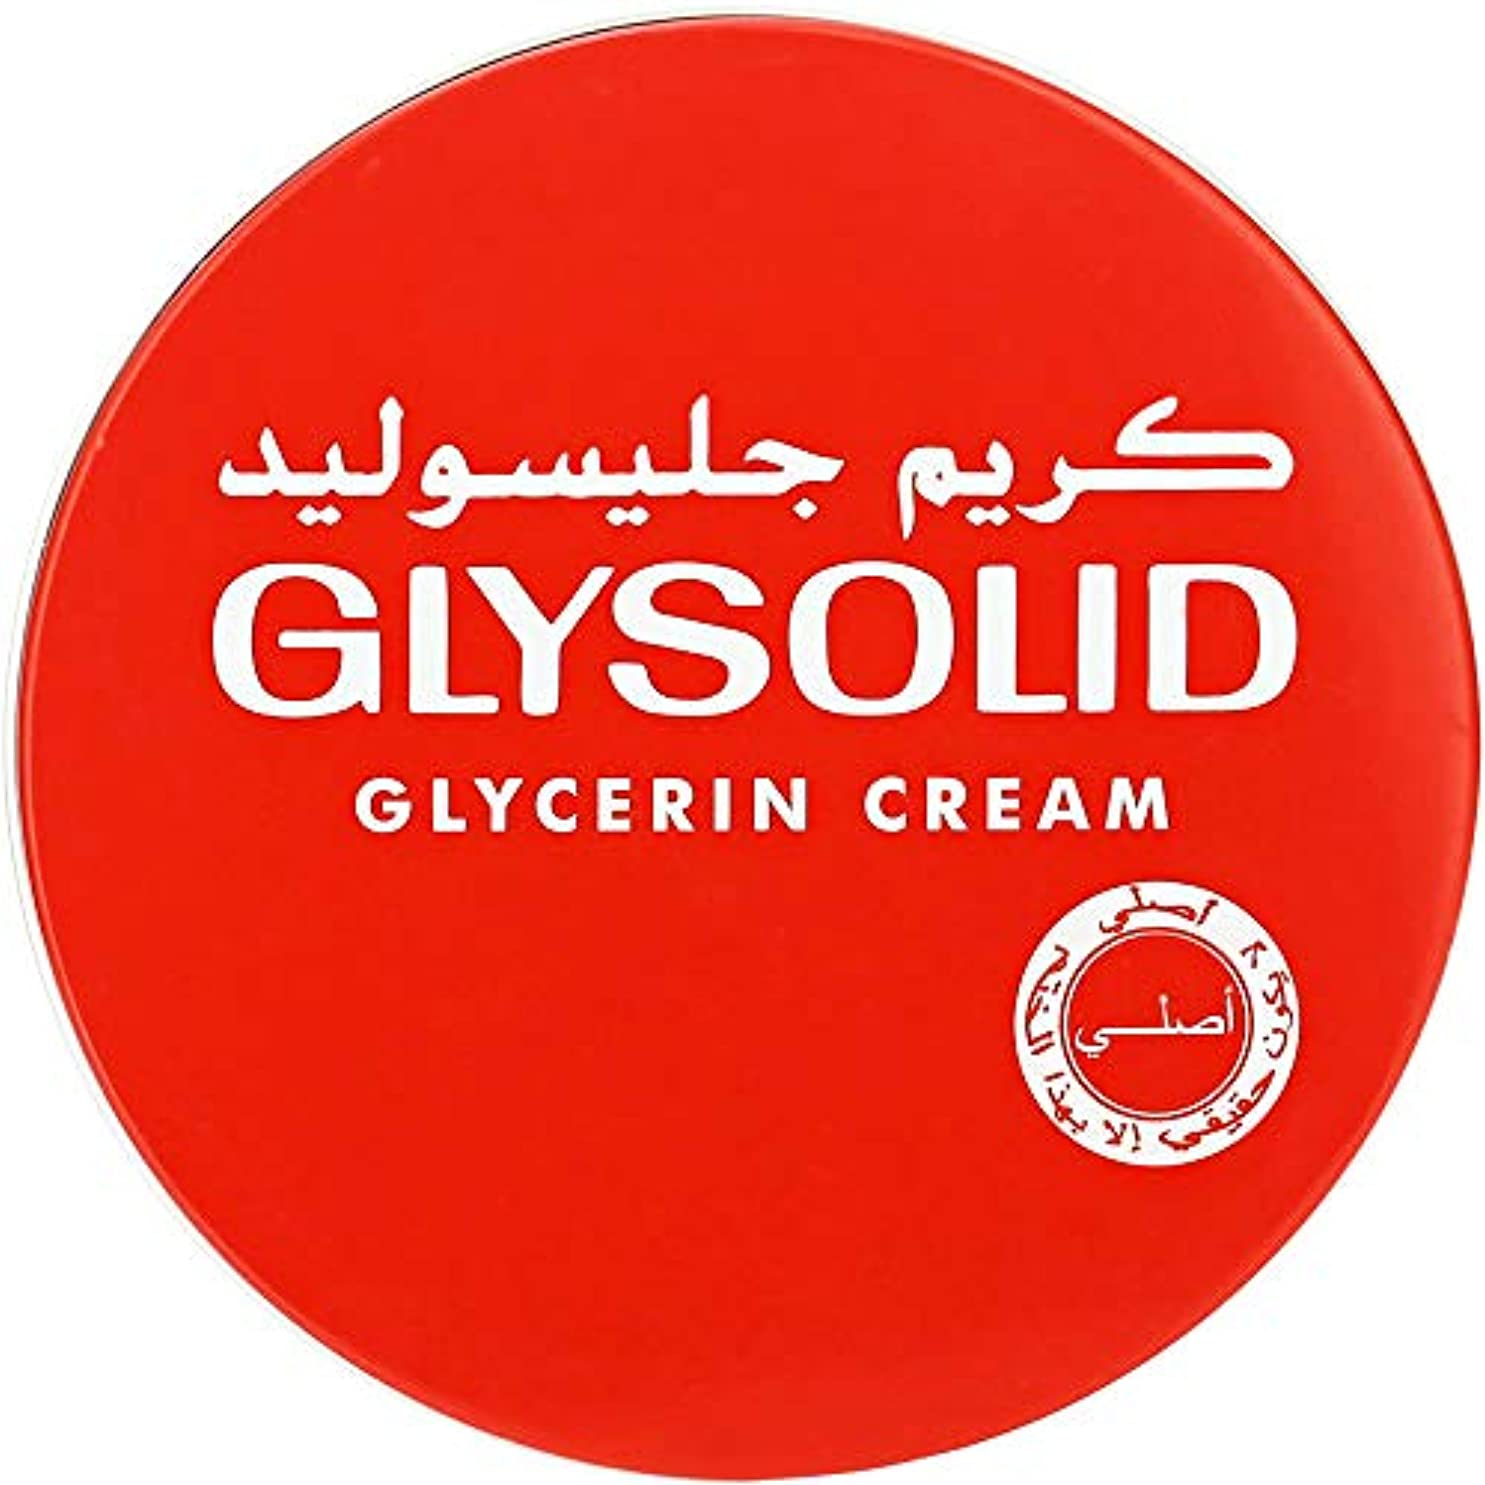 畝間満足させるコンパスGlysolid Cream Face Moisturizers For Dry Skin Hands Feet Elbow Body Softening With Glycerin Keeping Your Skin...